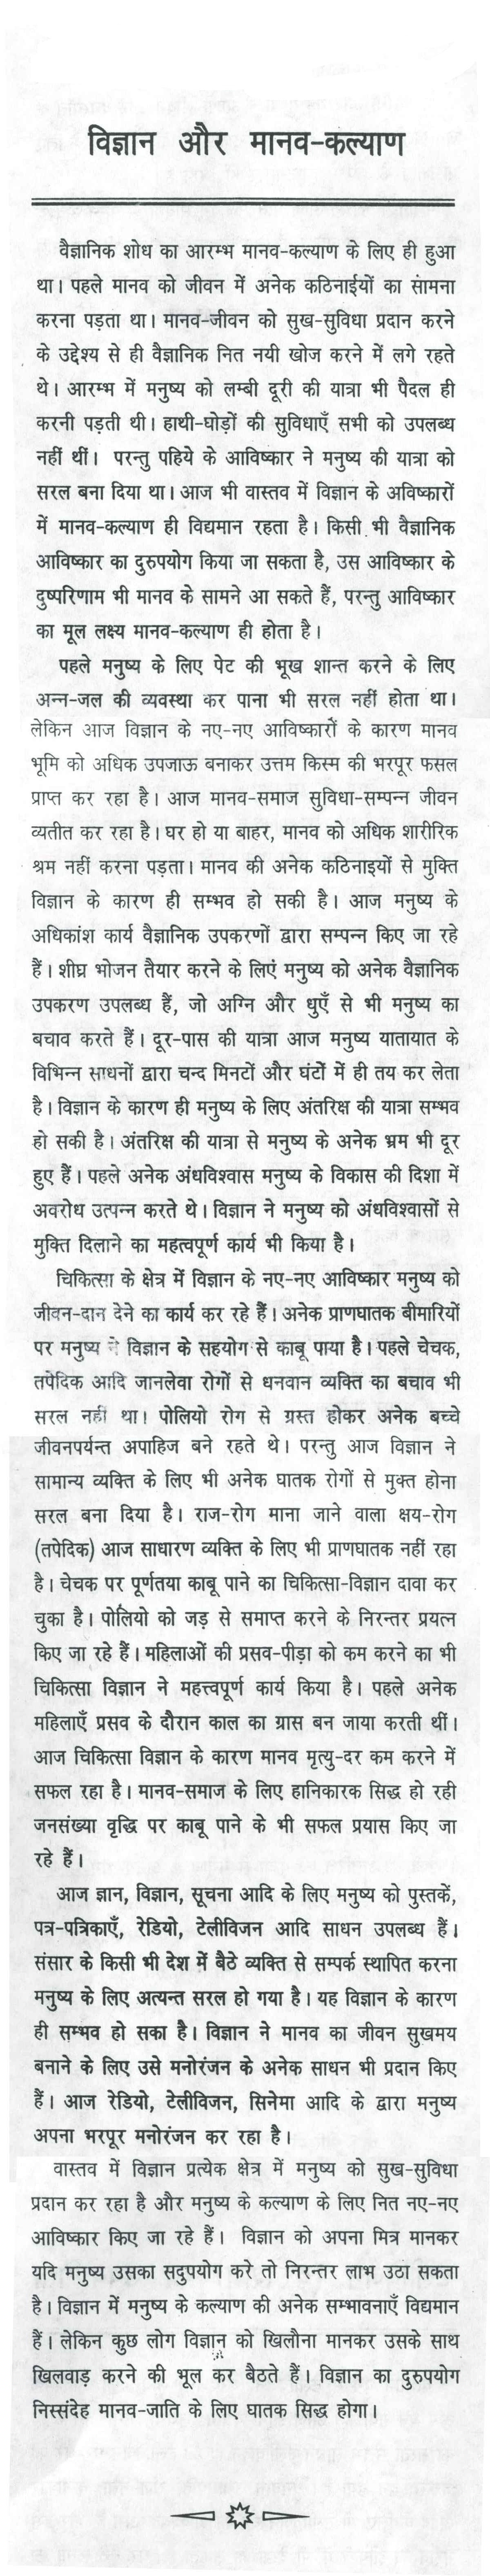 019 Advantage And Disadvantage Of Science Essay Example Benefit Education On Importance In Hindi Advantages Disadvantages Higher 10061 Benefits Shocking With Quotes Language Full